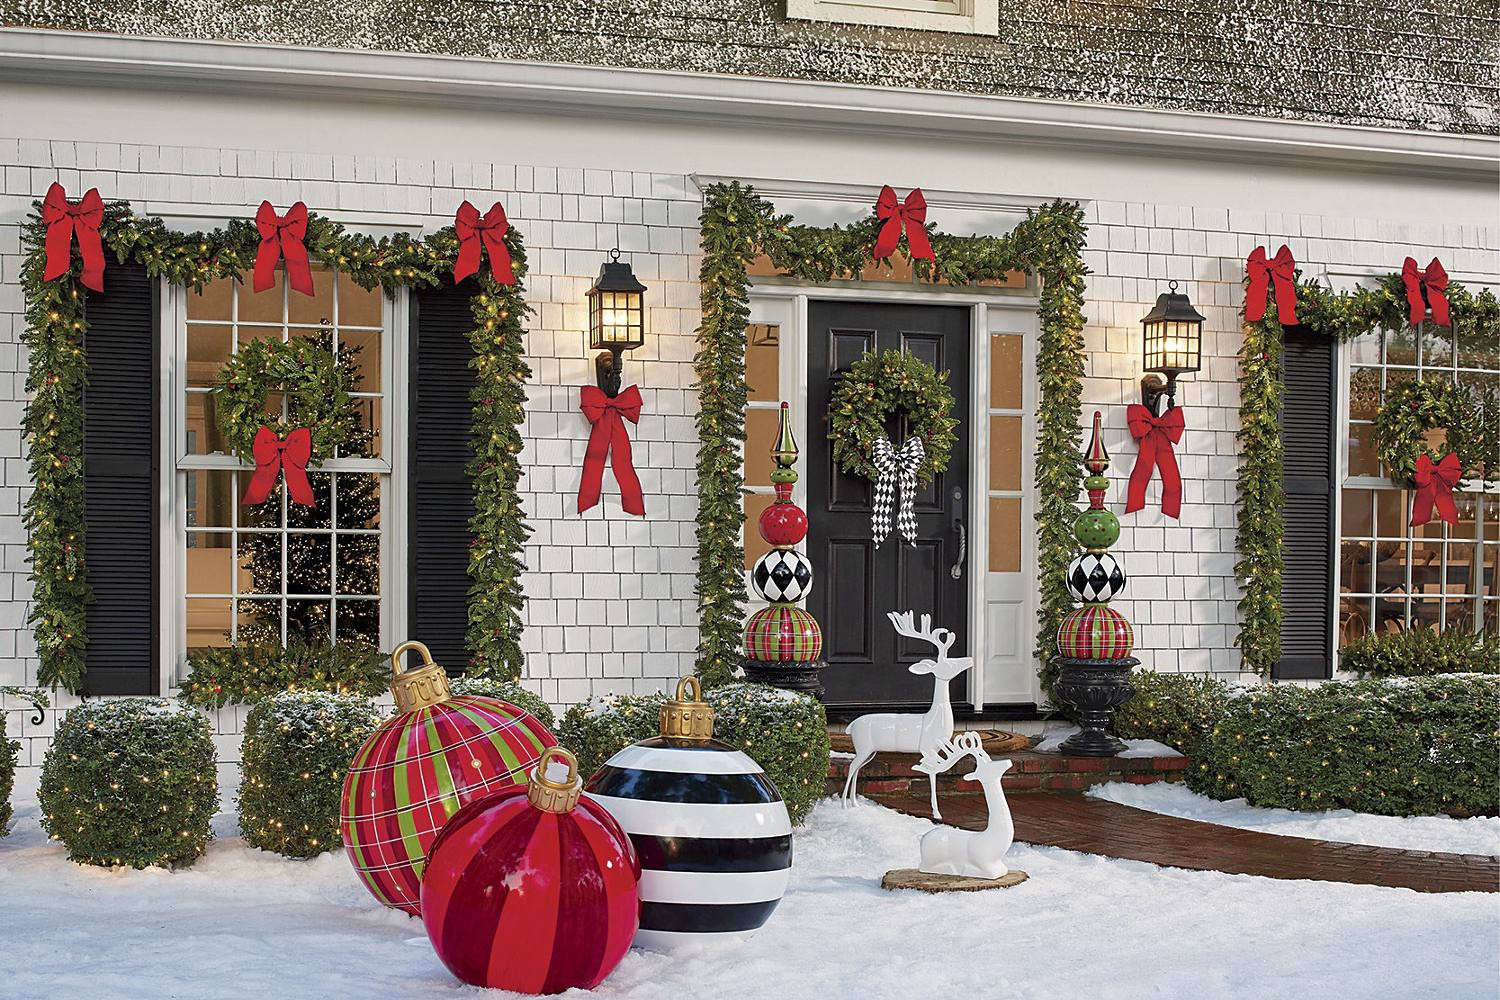 Porch Christmas Decorations  Christmas Porch Decorations 15 Holly Jolly Looks